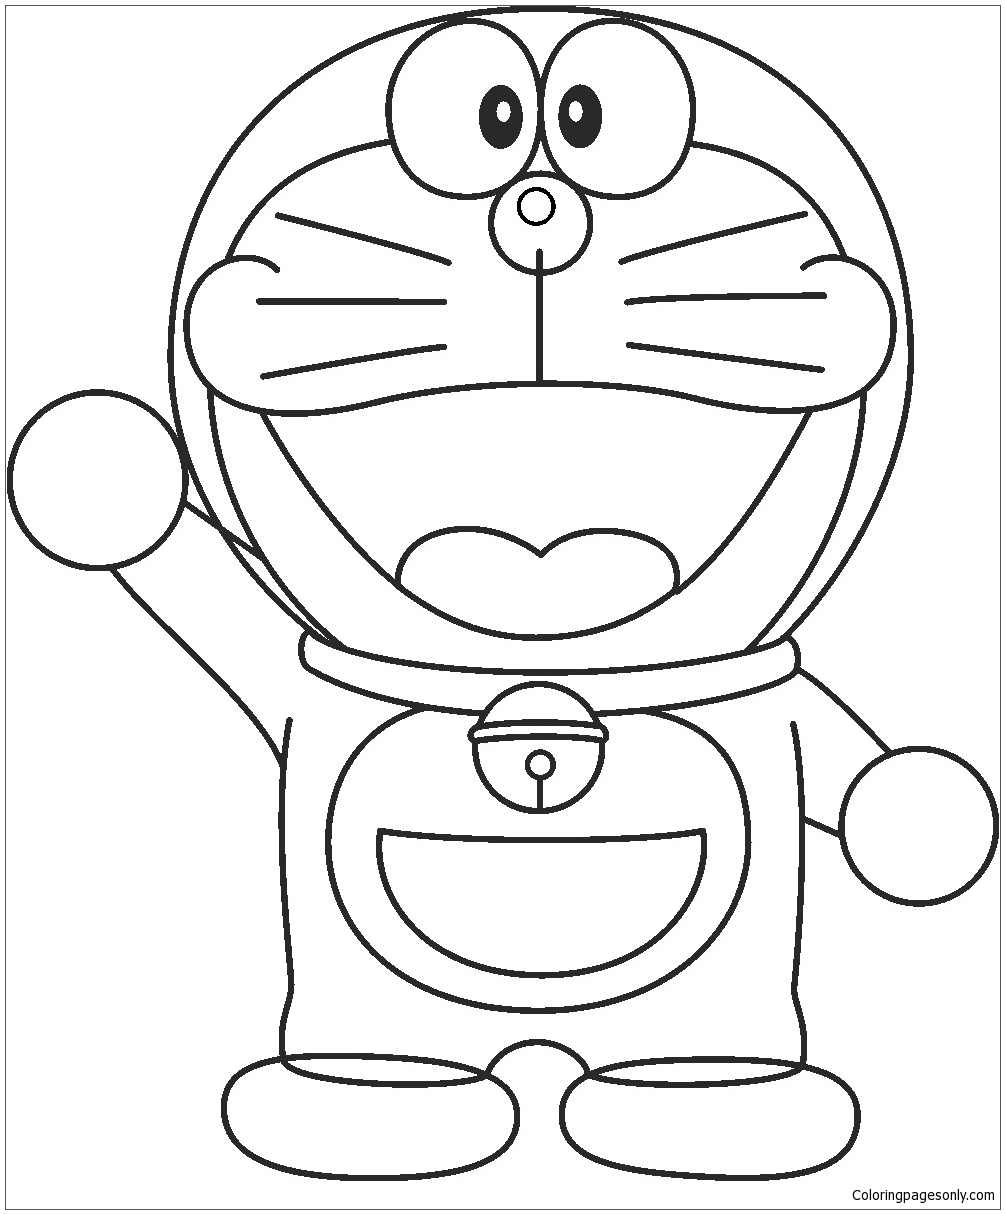 Doraemon Drawing Easy